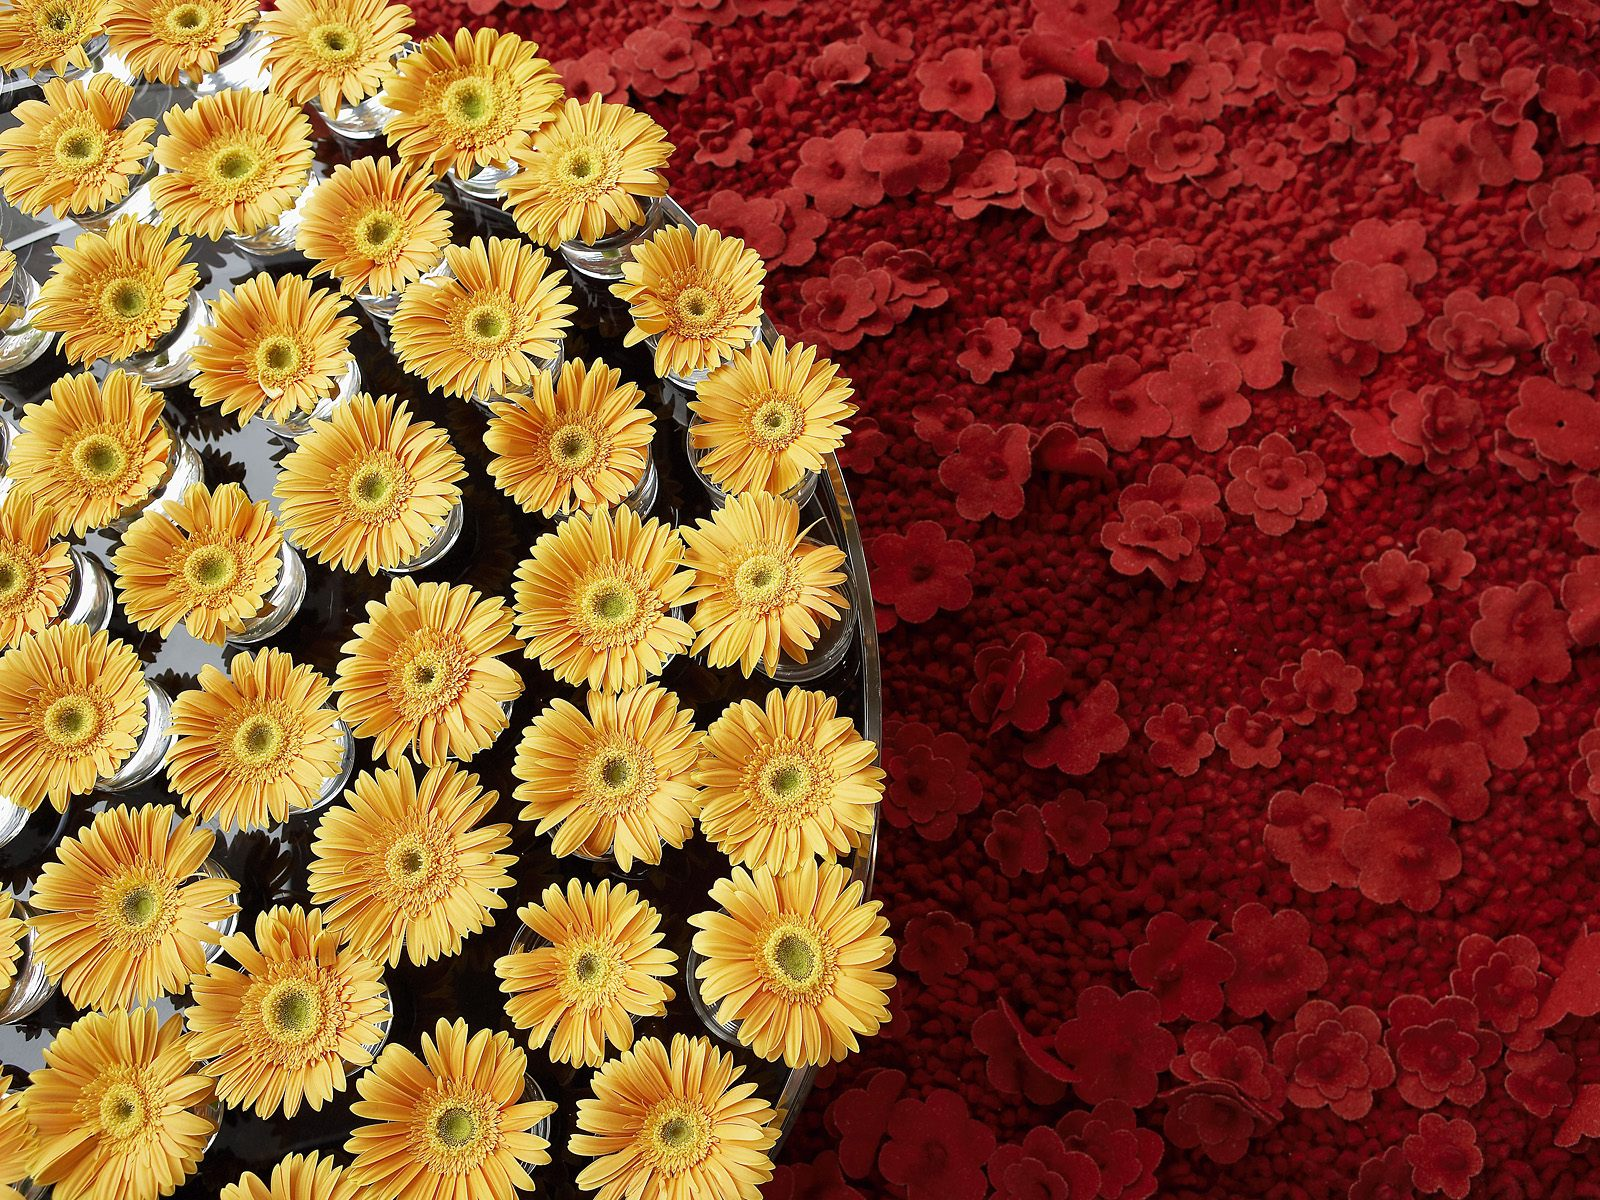 Floral Art Exhibition